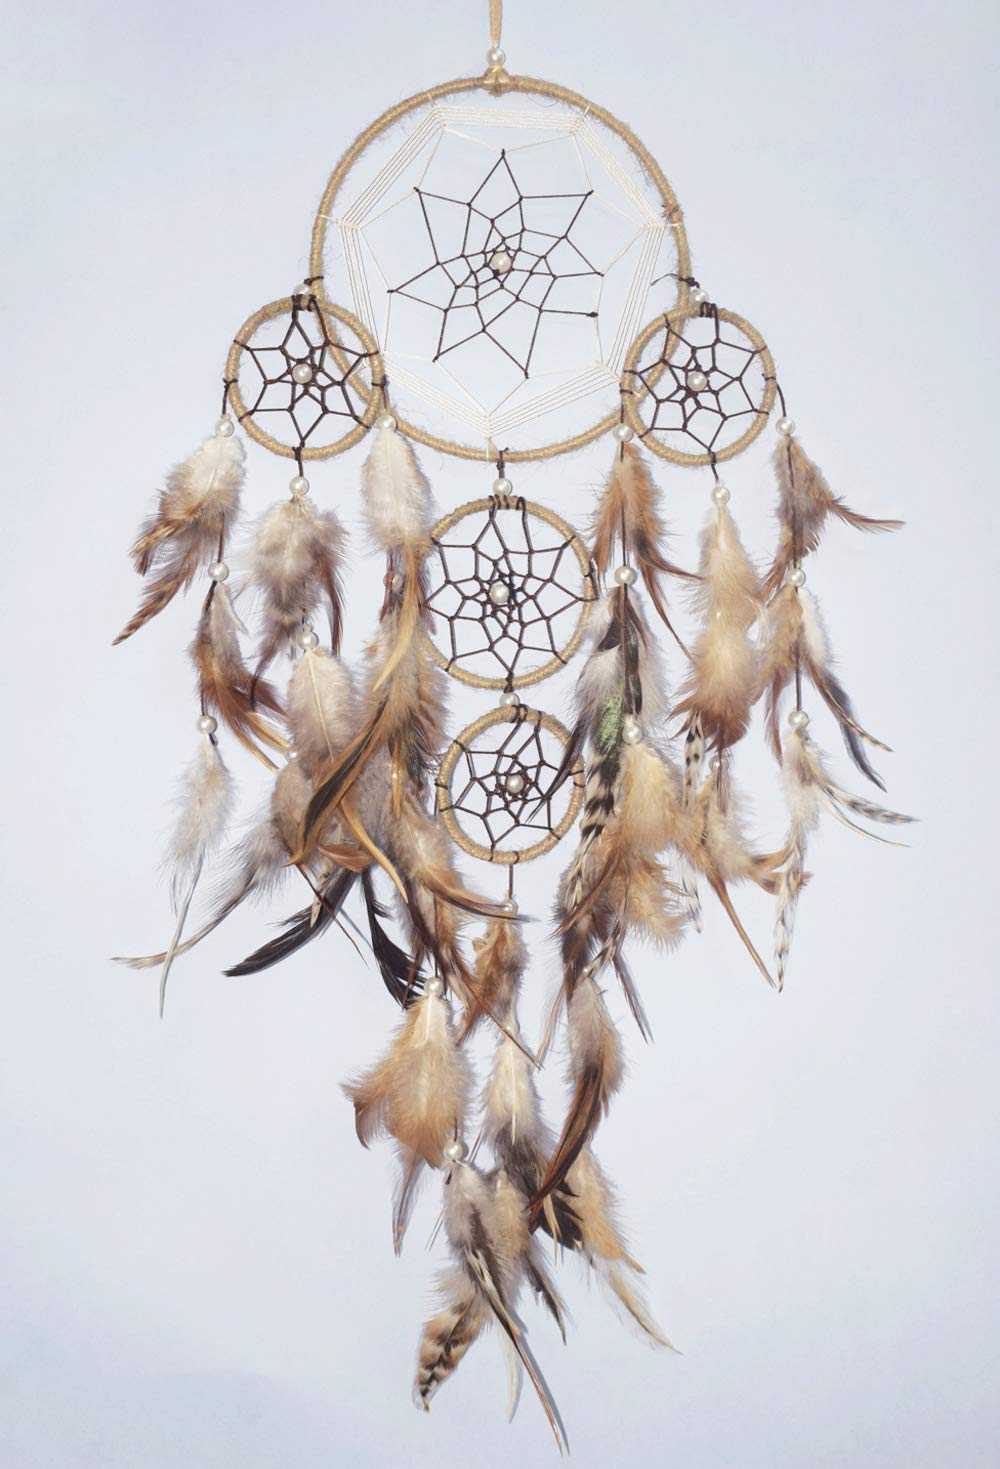 Asian Hobby Crafts Traditional Handcrafted Dream Catcher Wall Hanging with Natural Feathers - Brown Large Boho Style for Room Decor, Baby Shower, Gifting, Size - 21 x 6 inches (L x Dia)